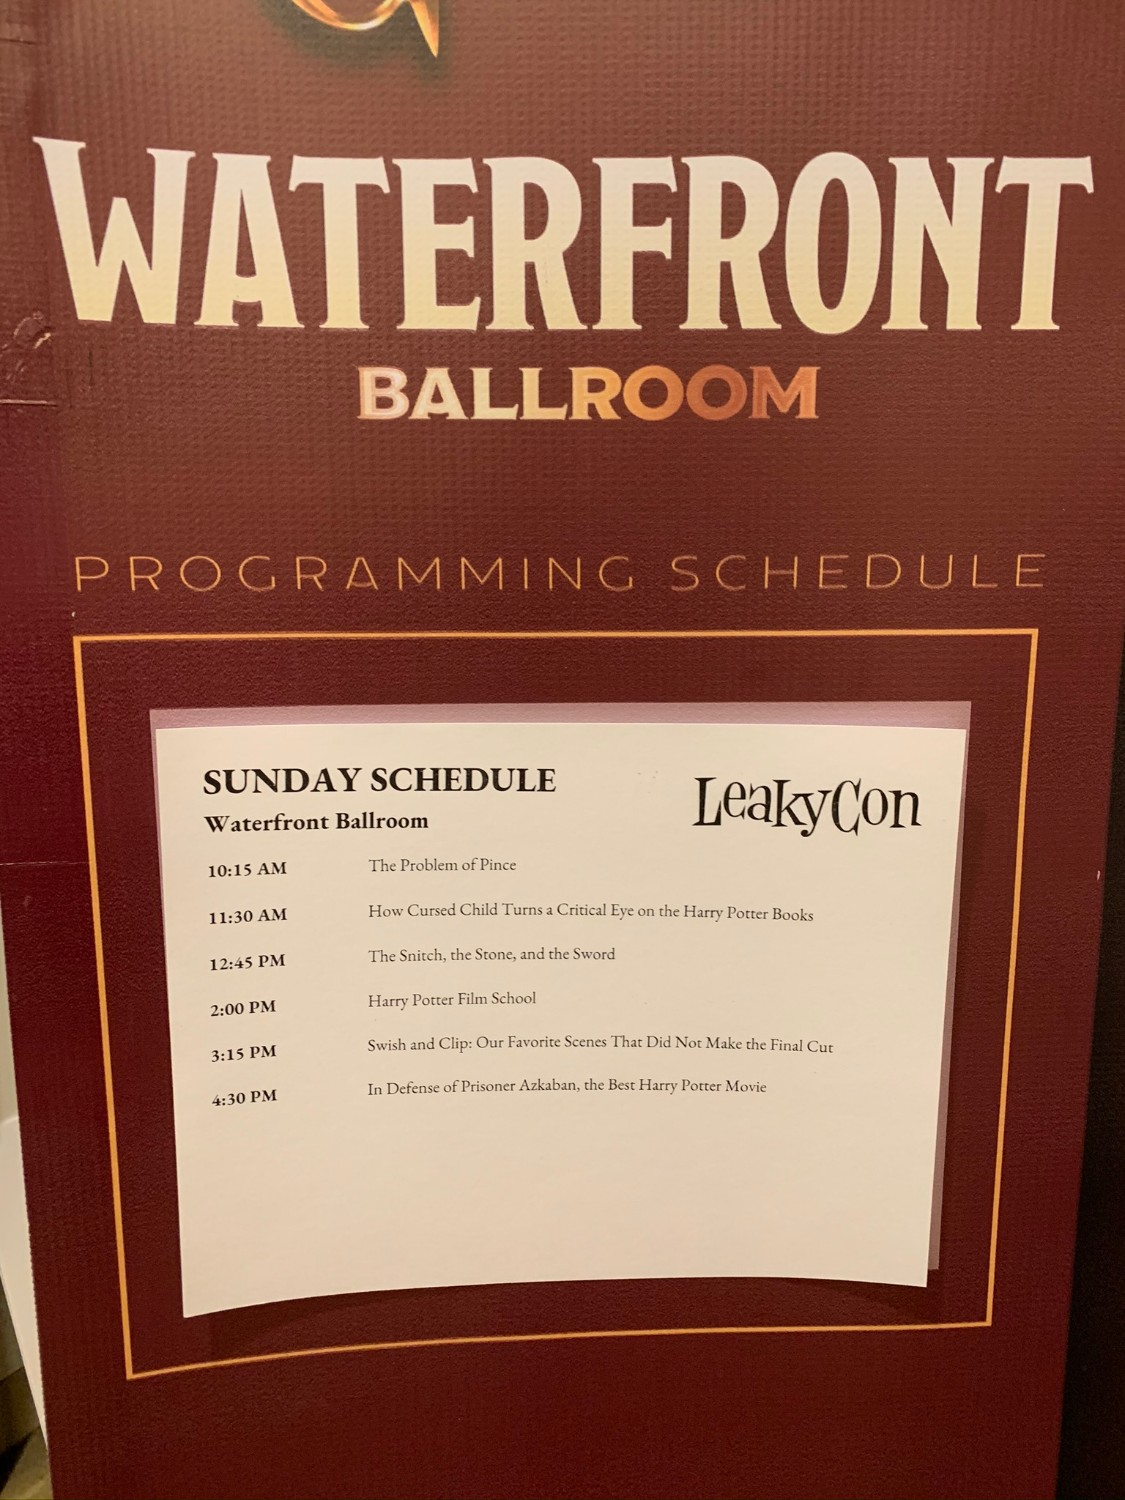 LeakyCon Waterfront Ballroom Sunday schedule